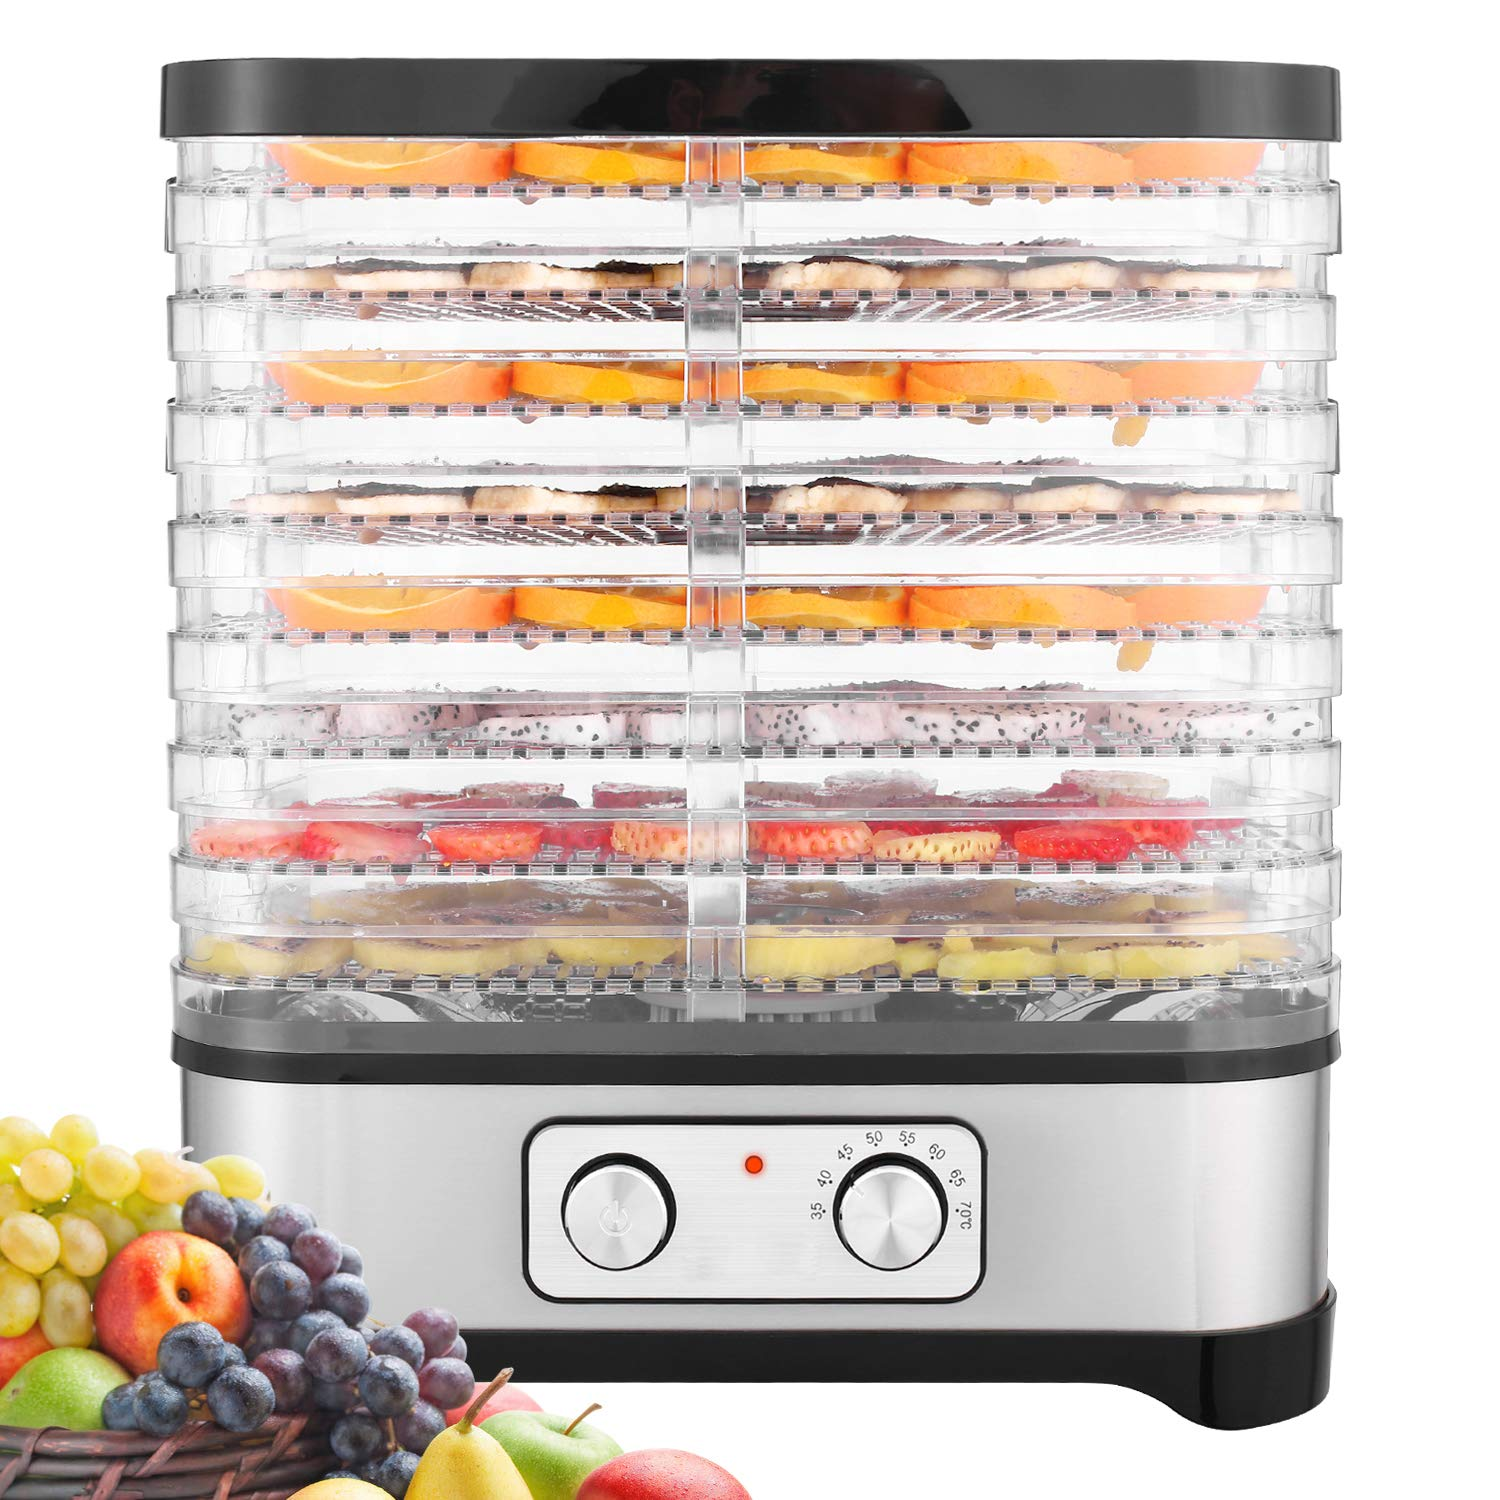 8 Trays Electric Food Dehydrator Machine For Jerky, Fruits With Temperature Control (400 Watt)